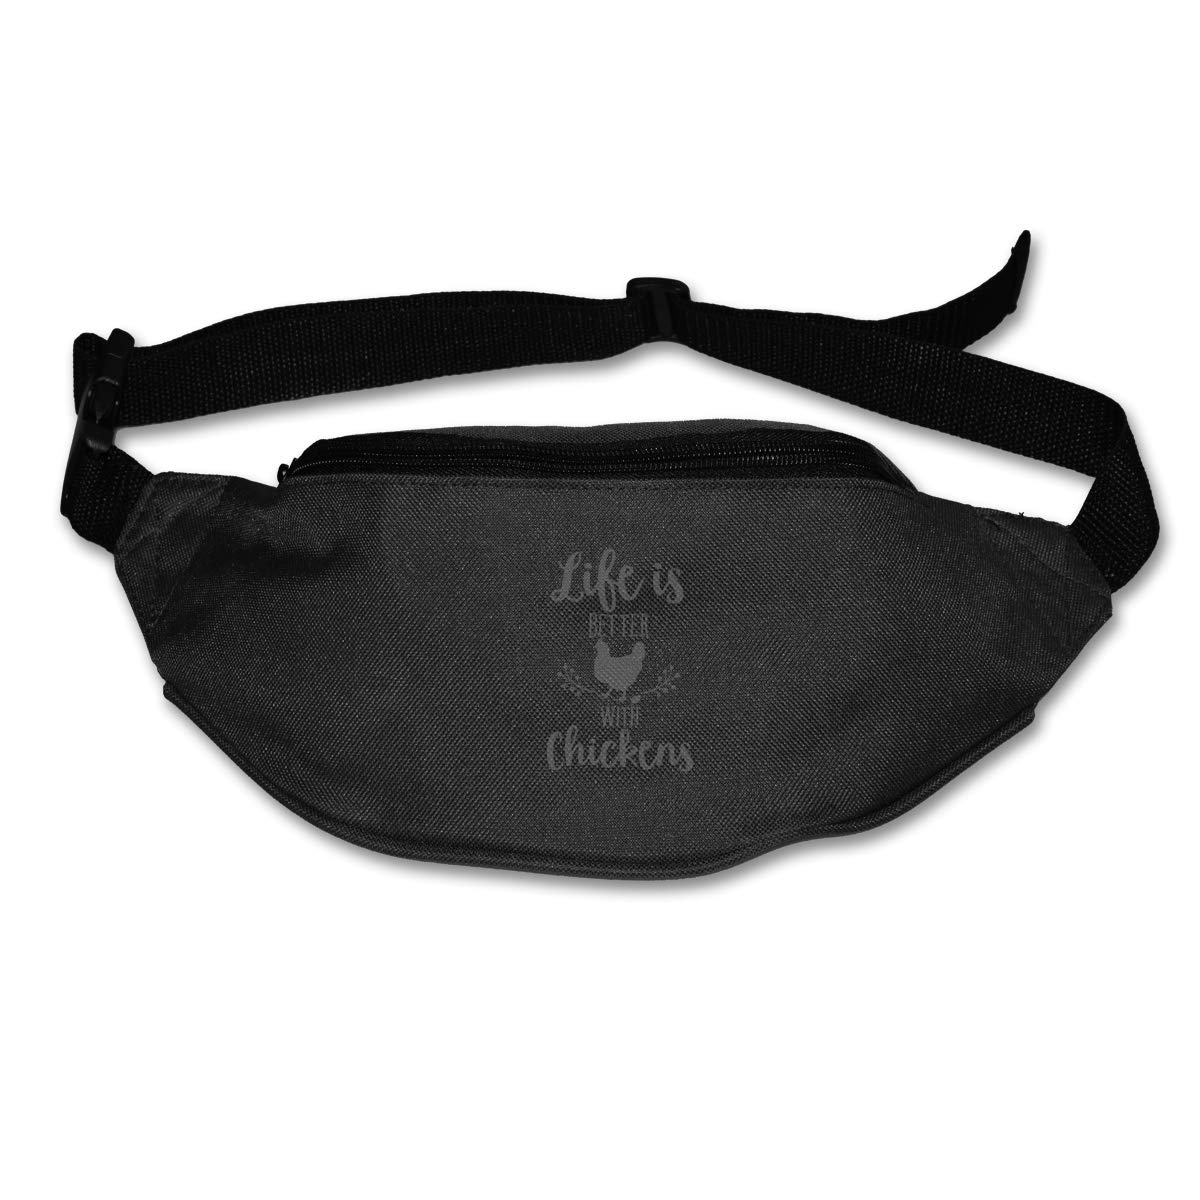 Life Is Better With Chickens Sport Waist Pack Fanny Pack Adjustable For Run